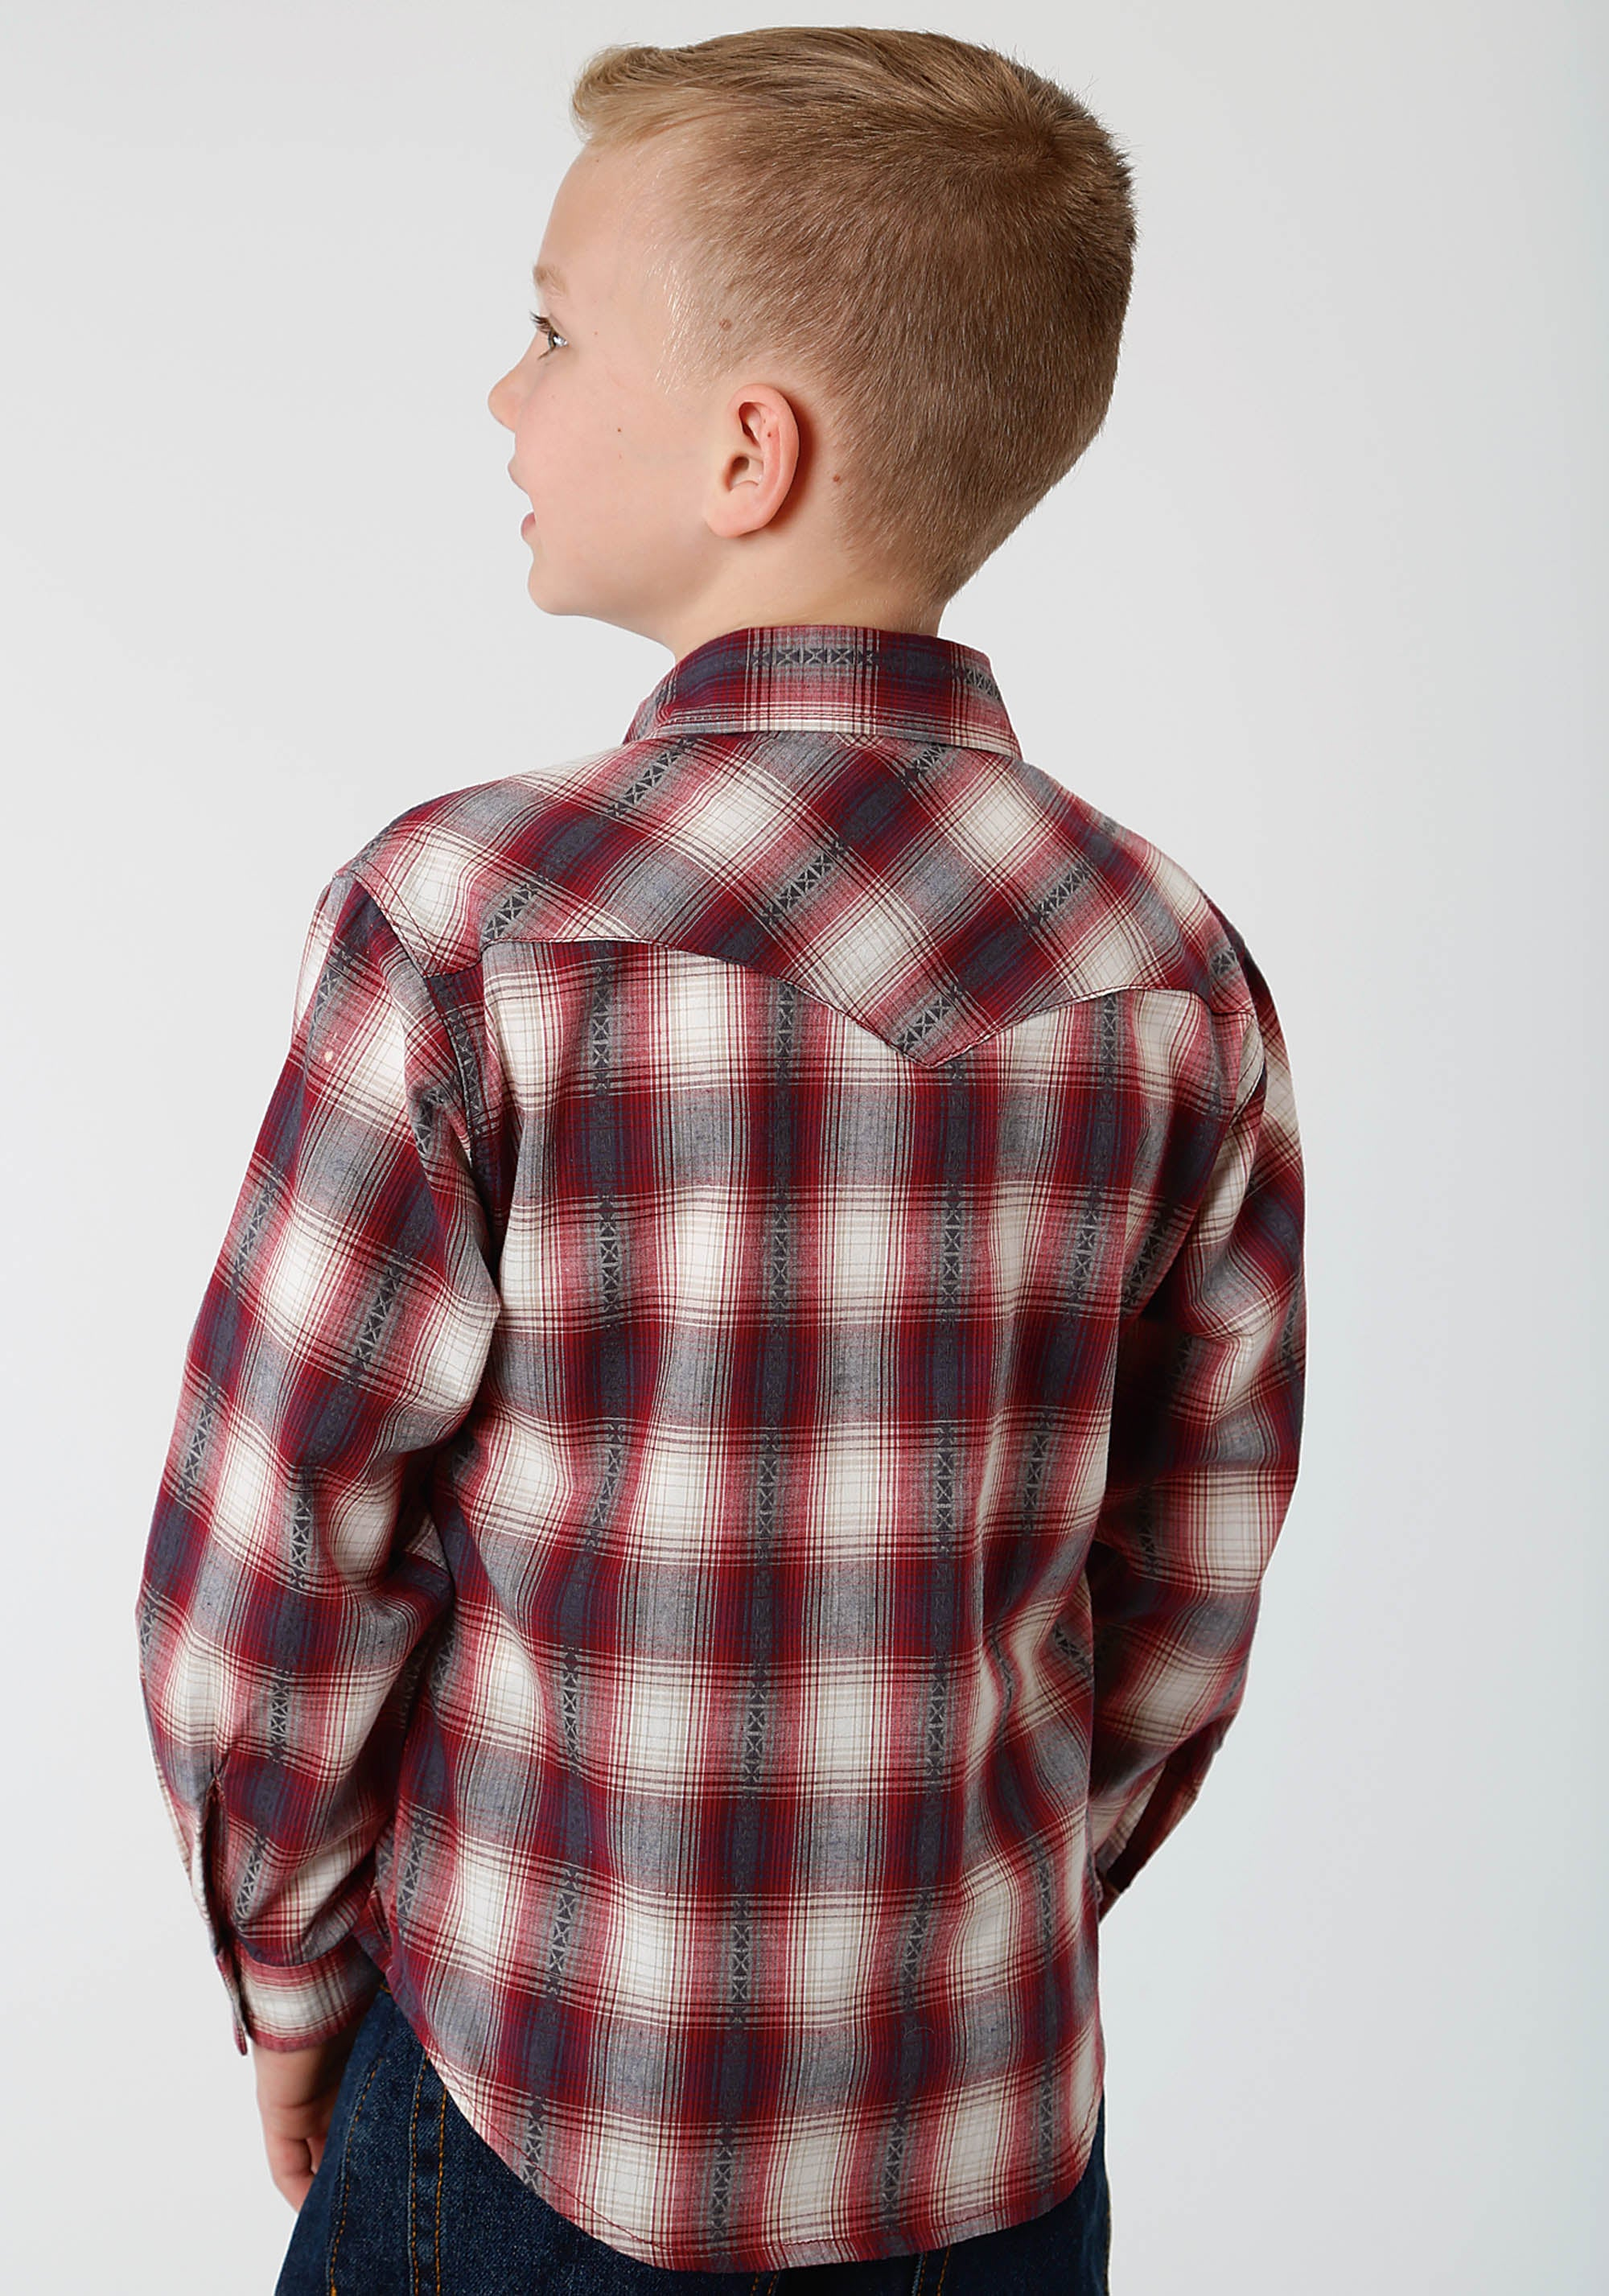 ROPER BOYS RED 0712 RED ROCK DOBBY WEST MADE COLLECTION LONG SLEEVE